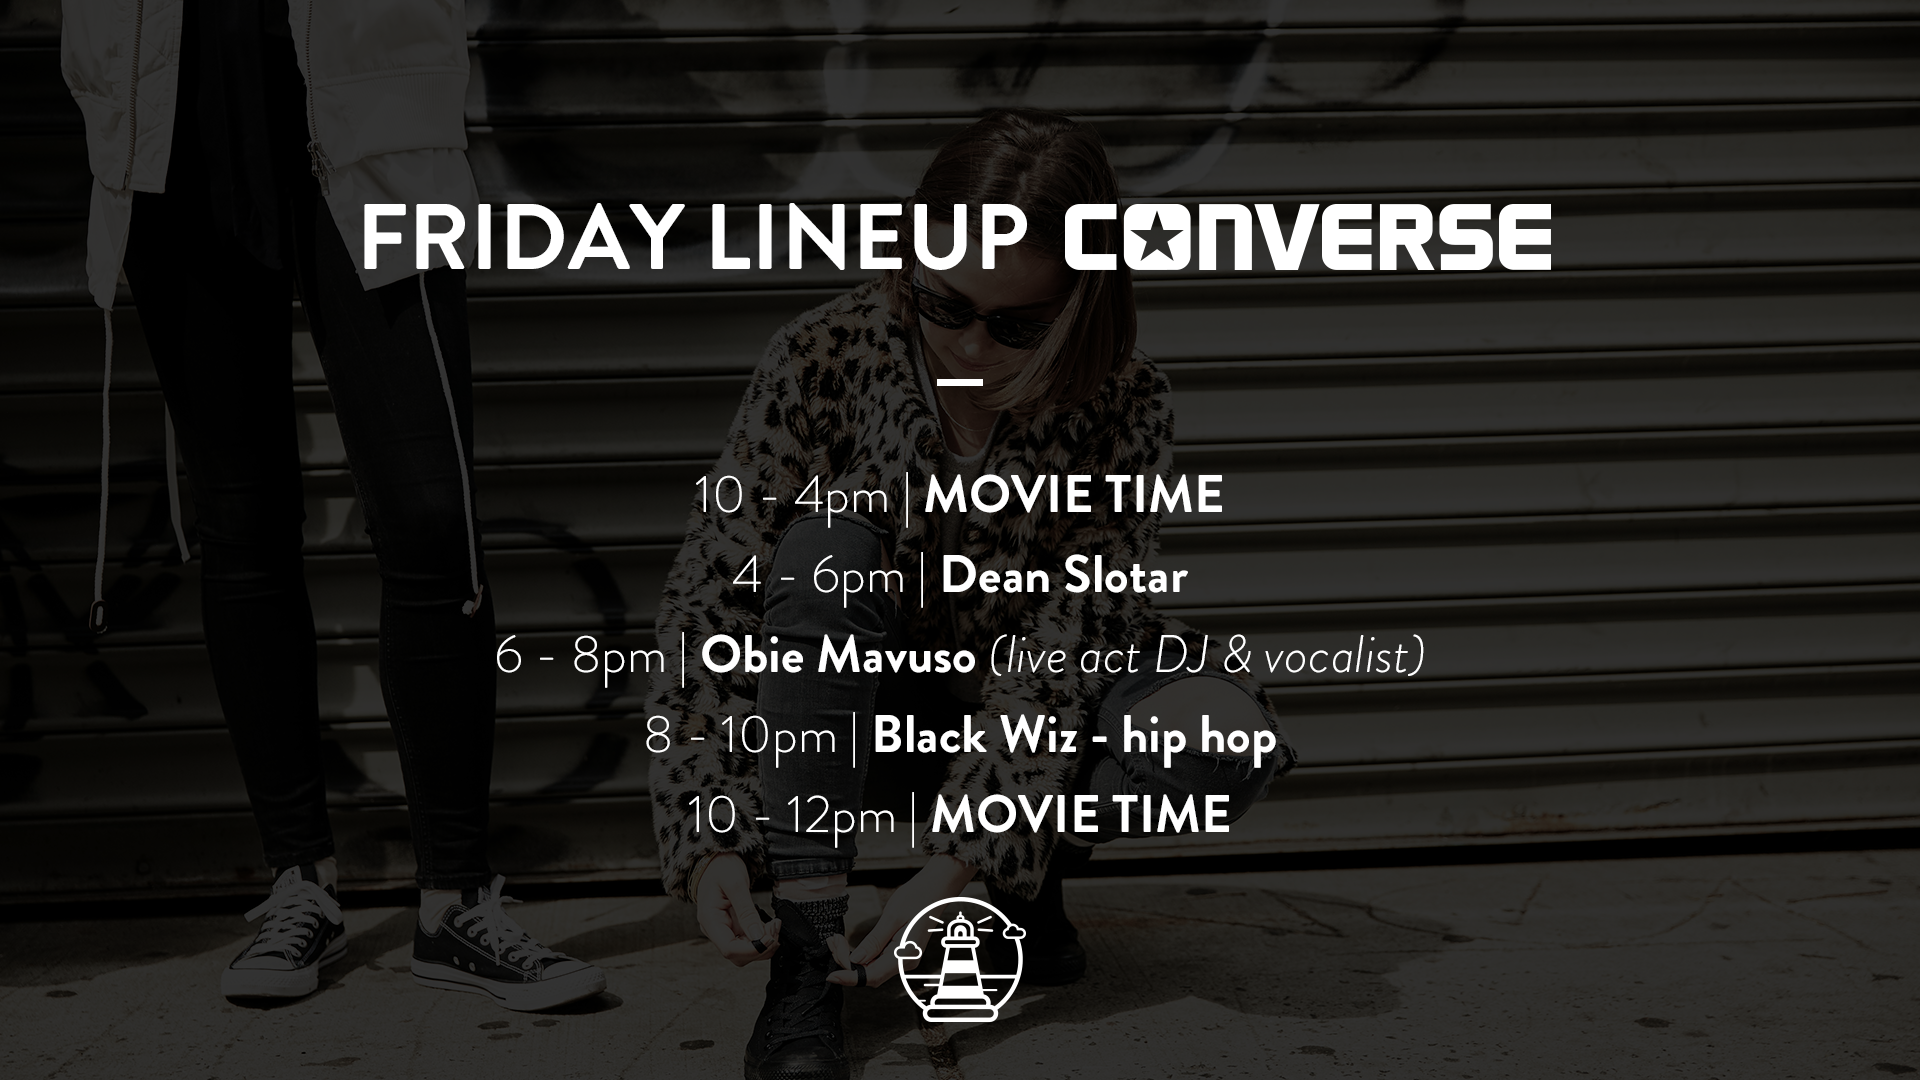 Converse-screen-lineup-artwork-4.png